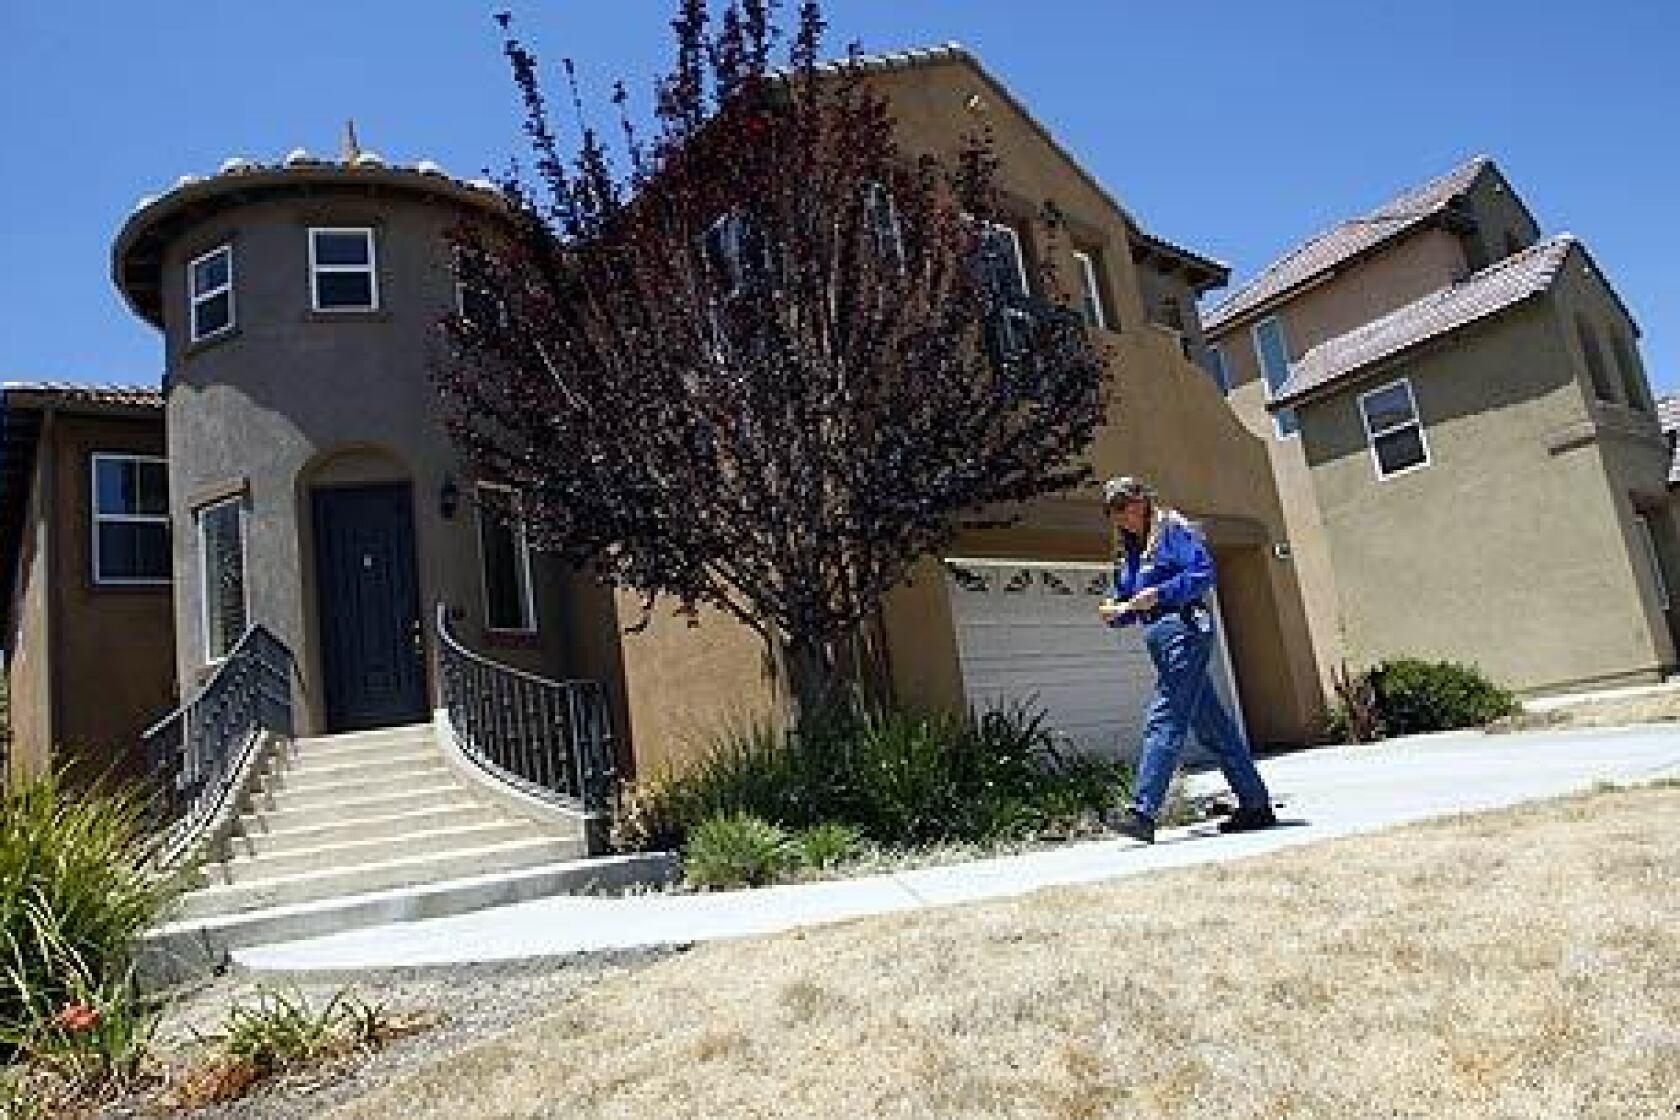 Housing downturn is a jolt to upscale Temecula - Los Angeles